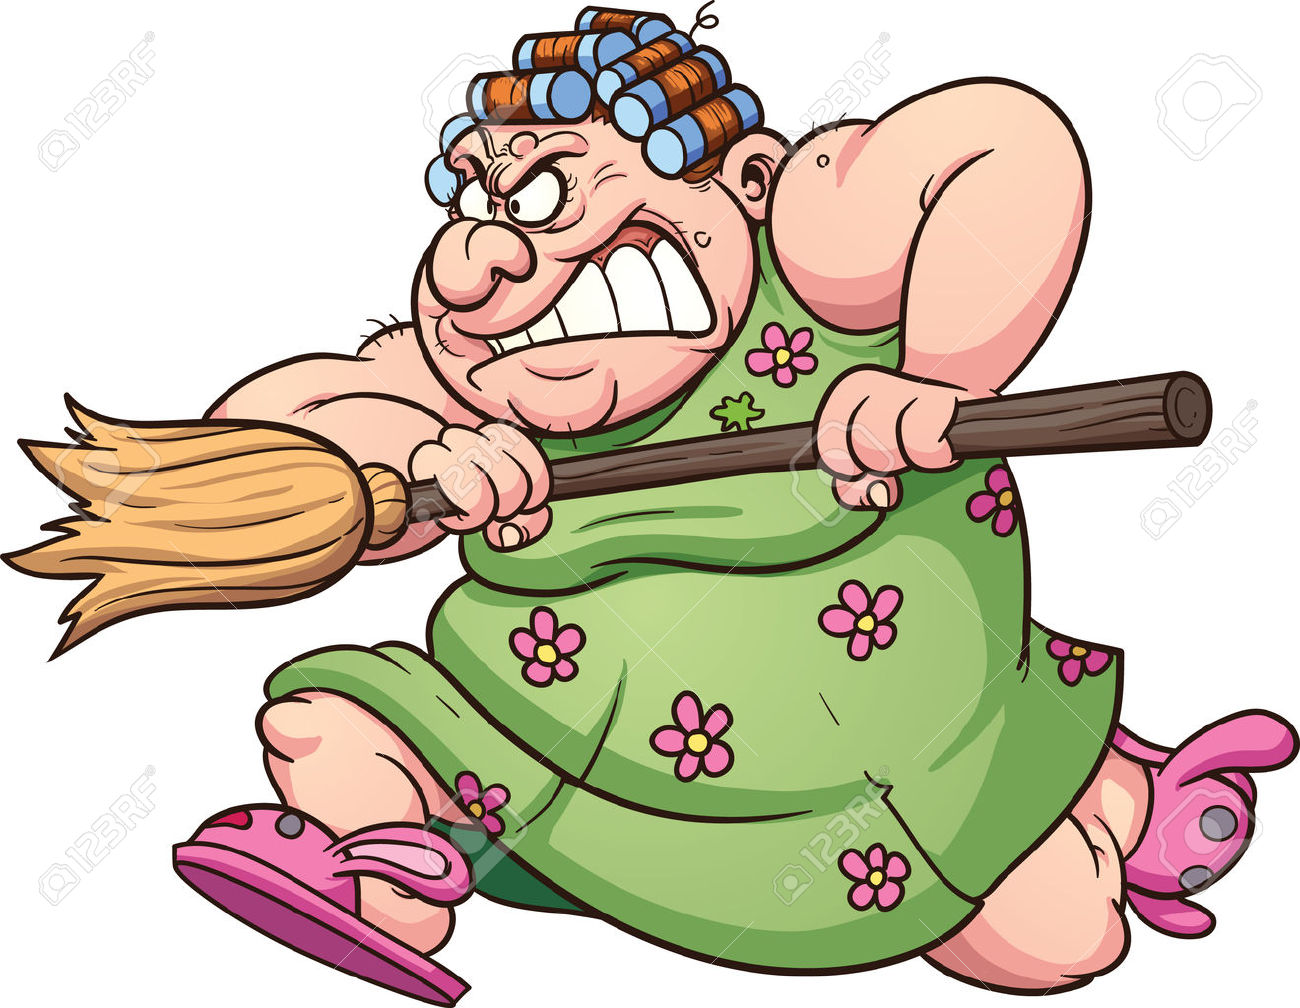 Clipart of a woman on a broom graphic library library Fat Woman Running With A Broom Clip Art Illustration With Simple ... graphic library library